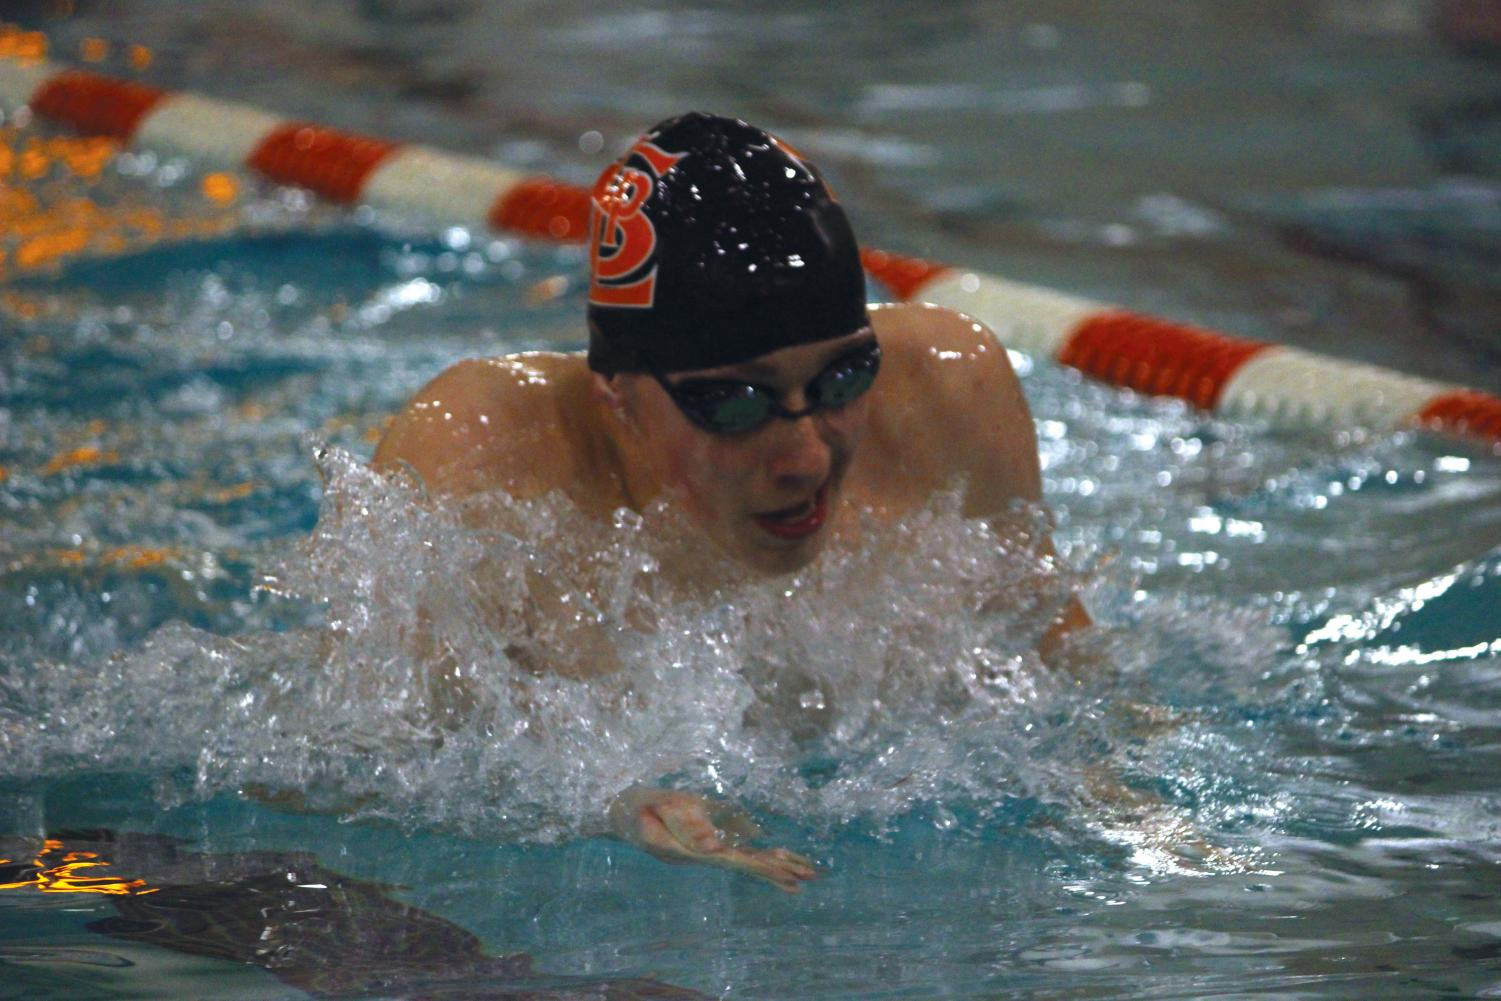 Junior Luke Anderson swims the breaststroke during practice in preparation for State competition March 3.   Anderson attended this year's State competition for the first time, swimming the 100 backstroke.